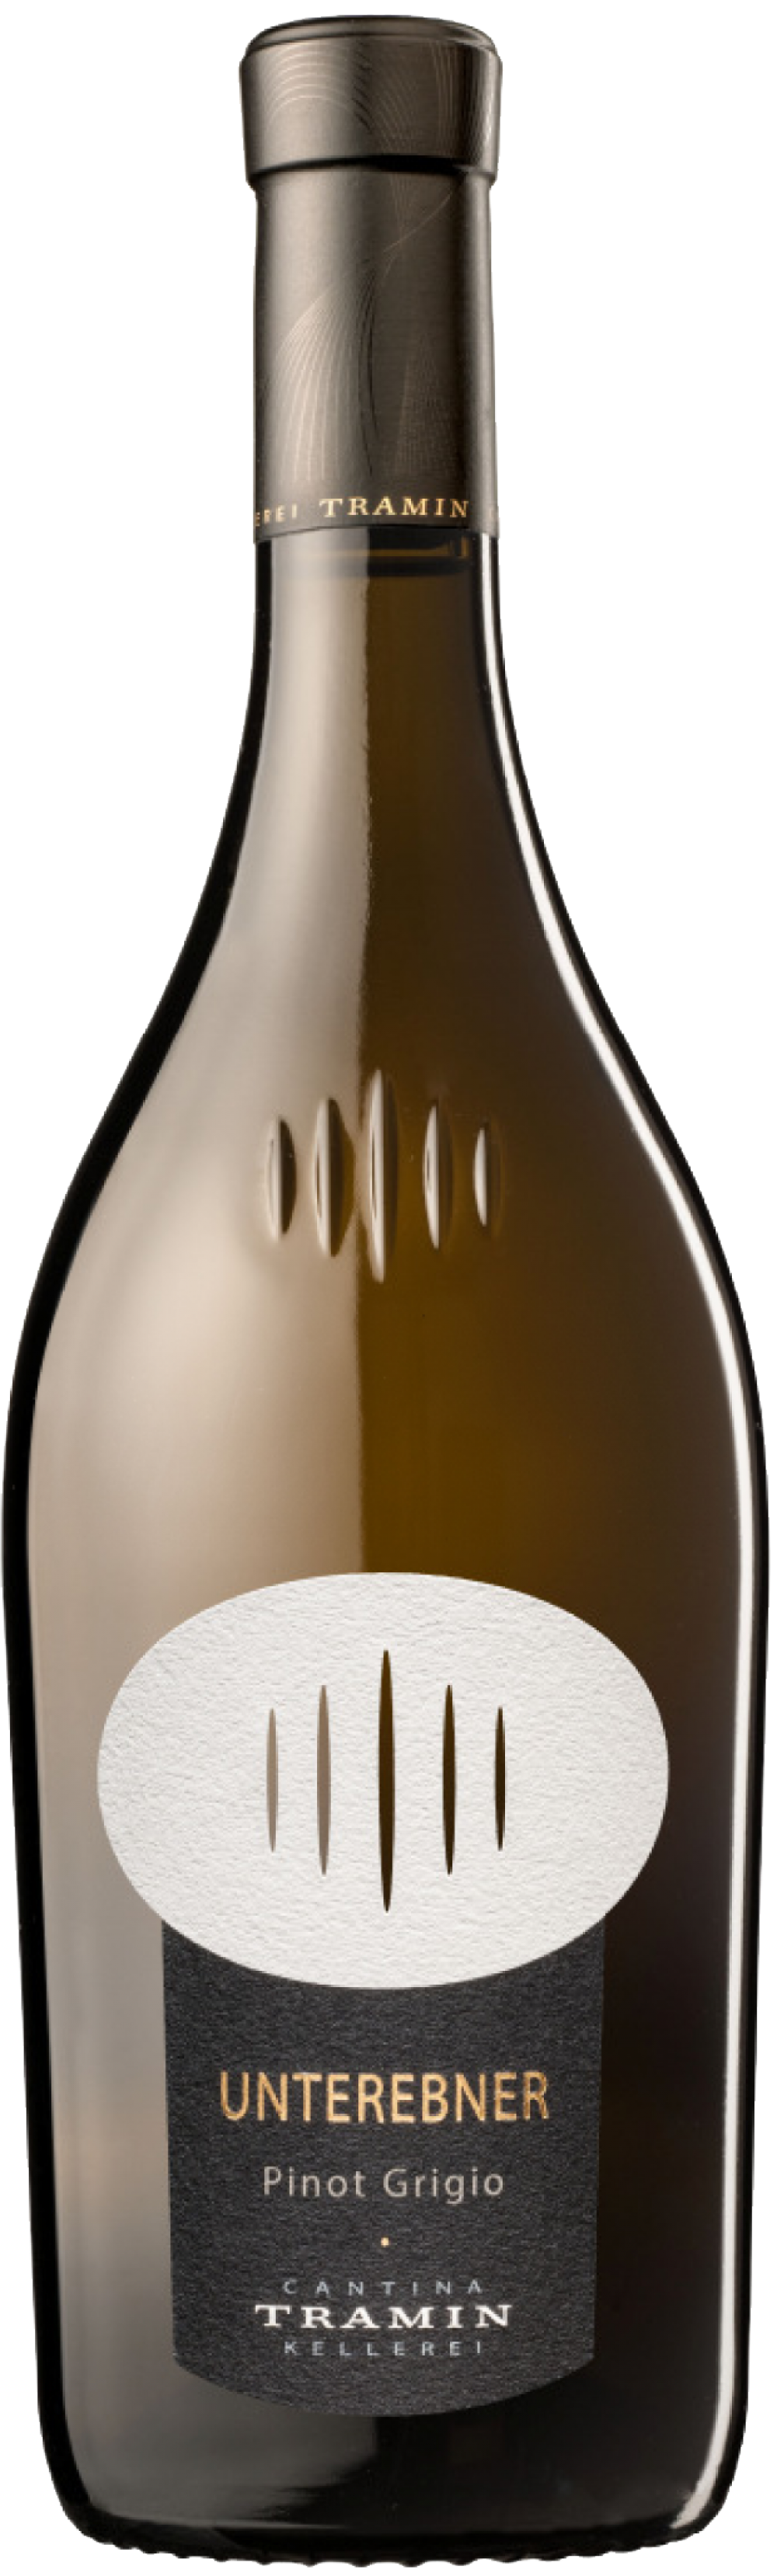 files/images/wines/Italy/cantina-tramin/IT1464.png